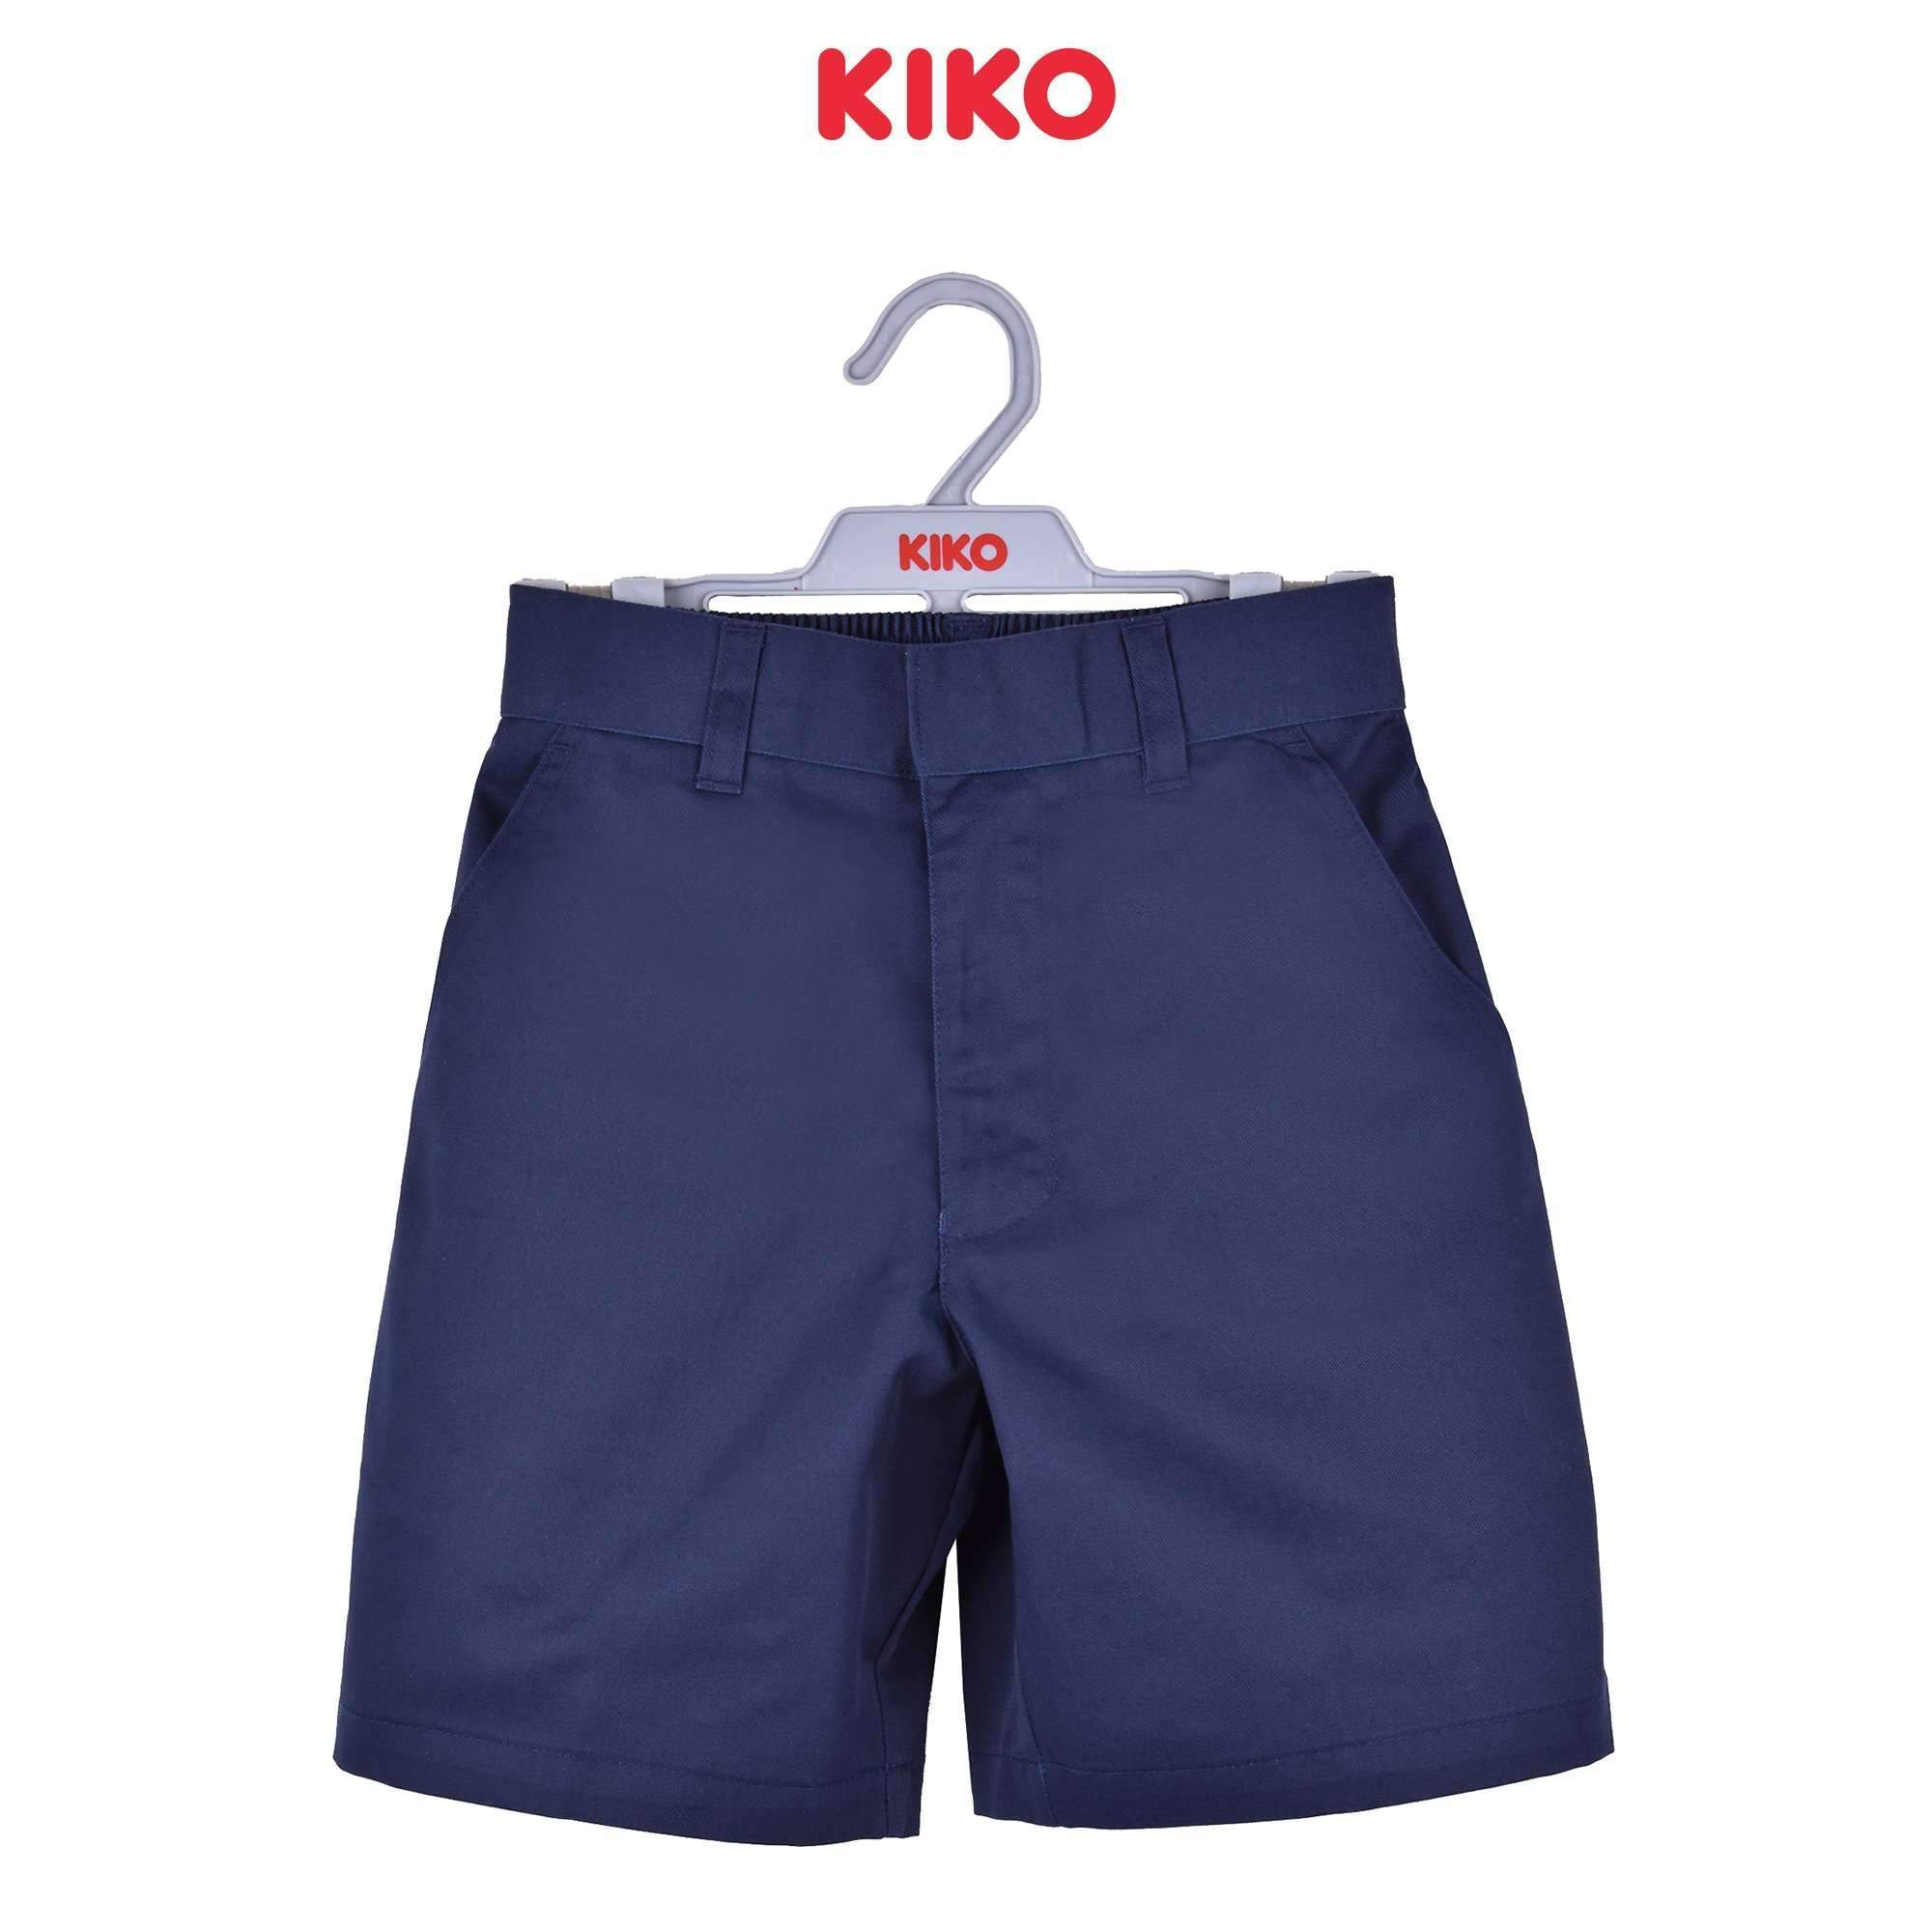 K-Primary Boy Short Pants School Uniform Primary - Navy 121033-24X : Buy K-Primary online at CMG.MY